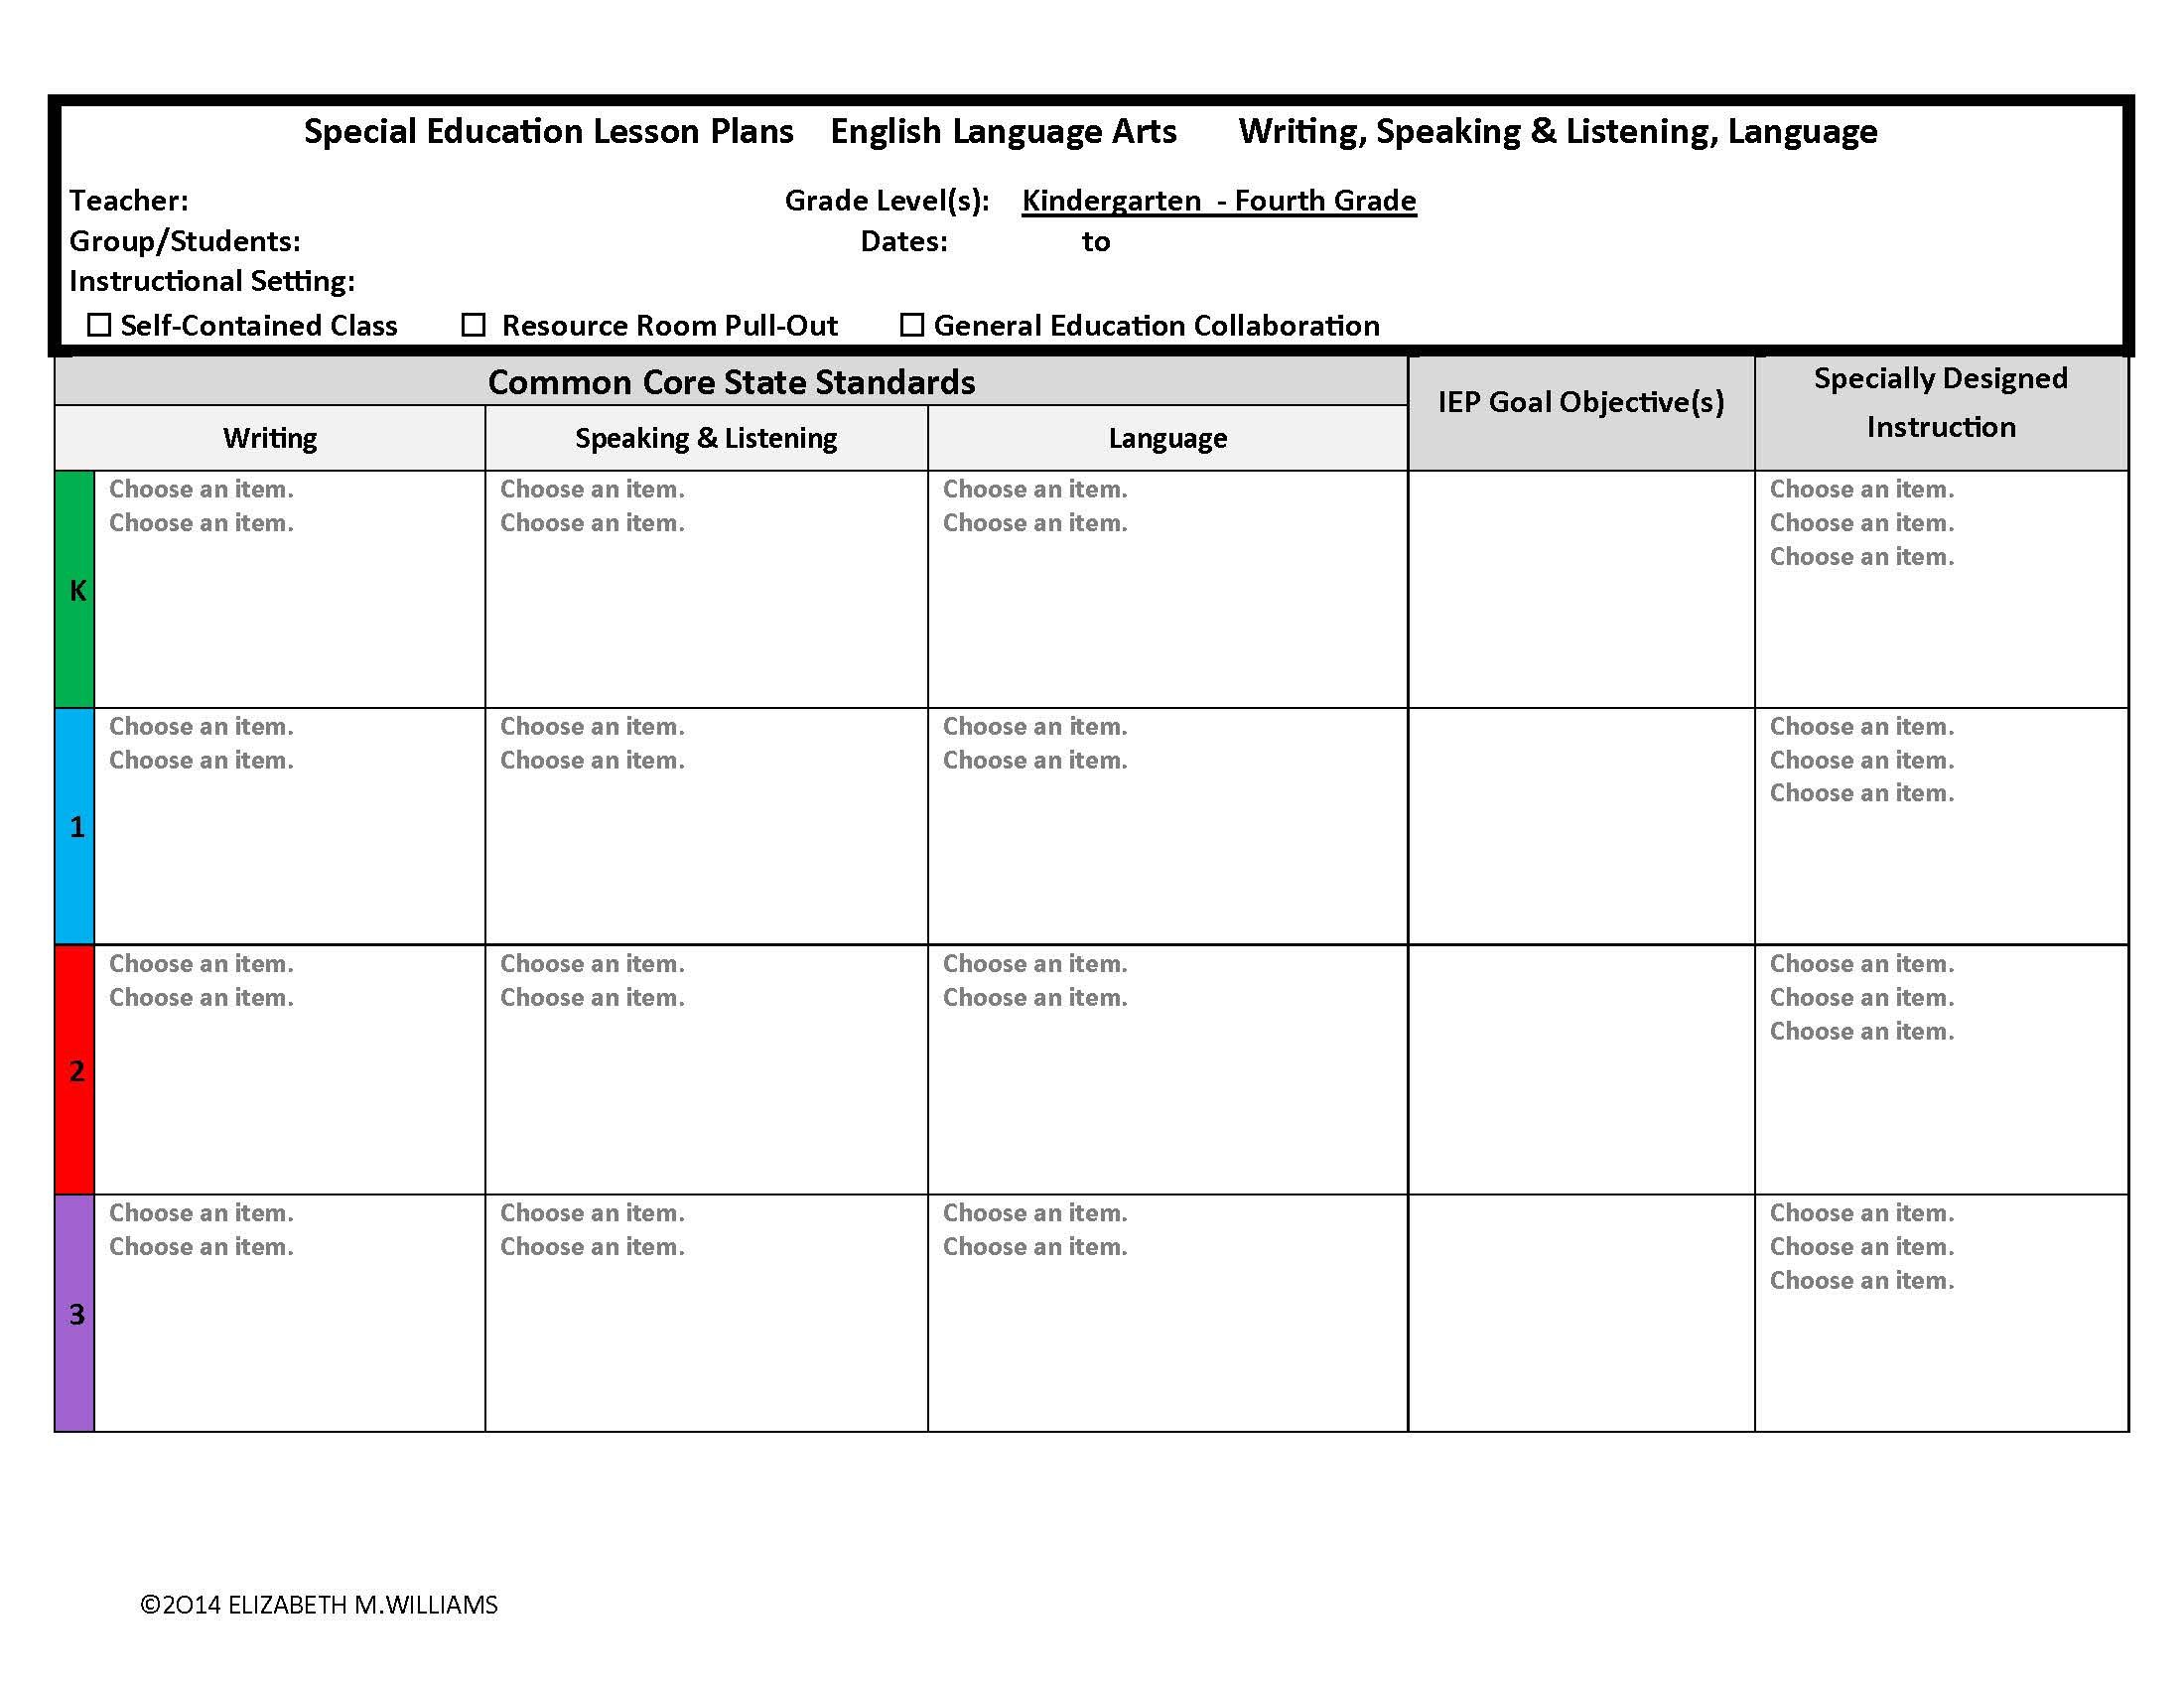 003 Unforgettable Lesson Plan Template For Kindergarten Common Core Highest Clarity Full